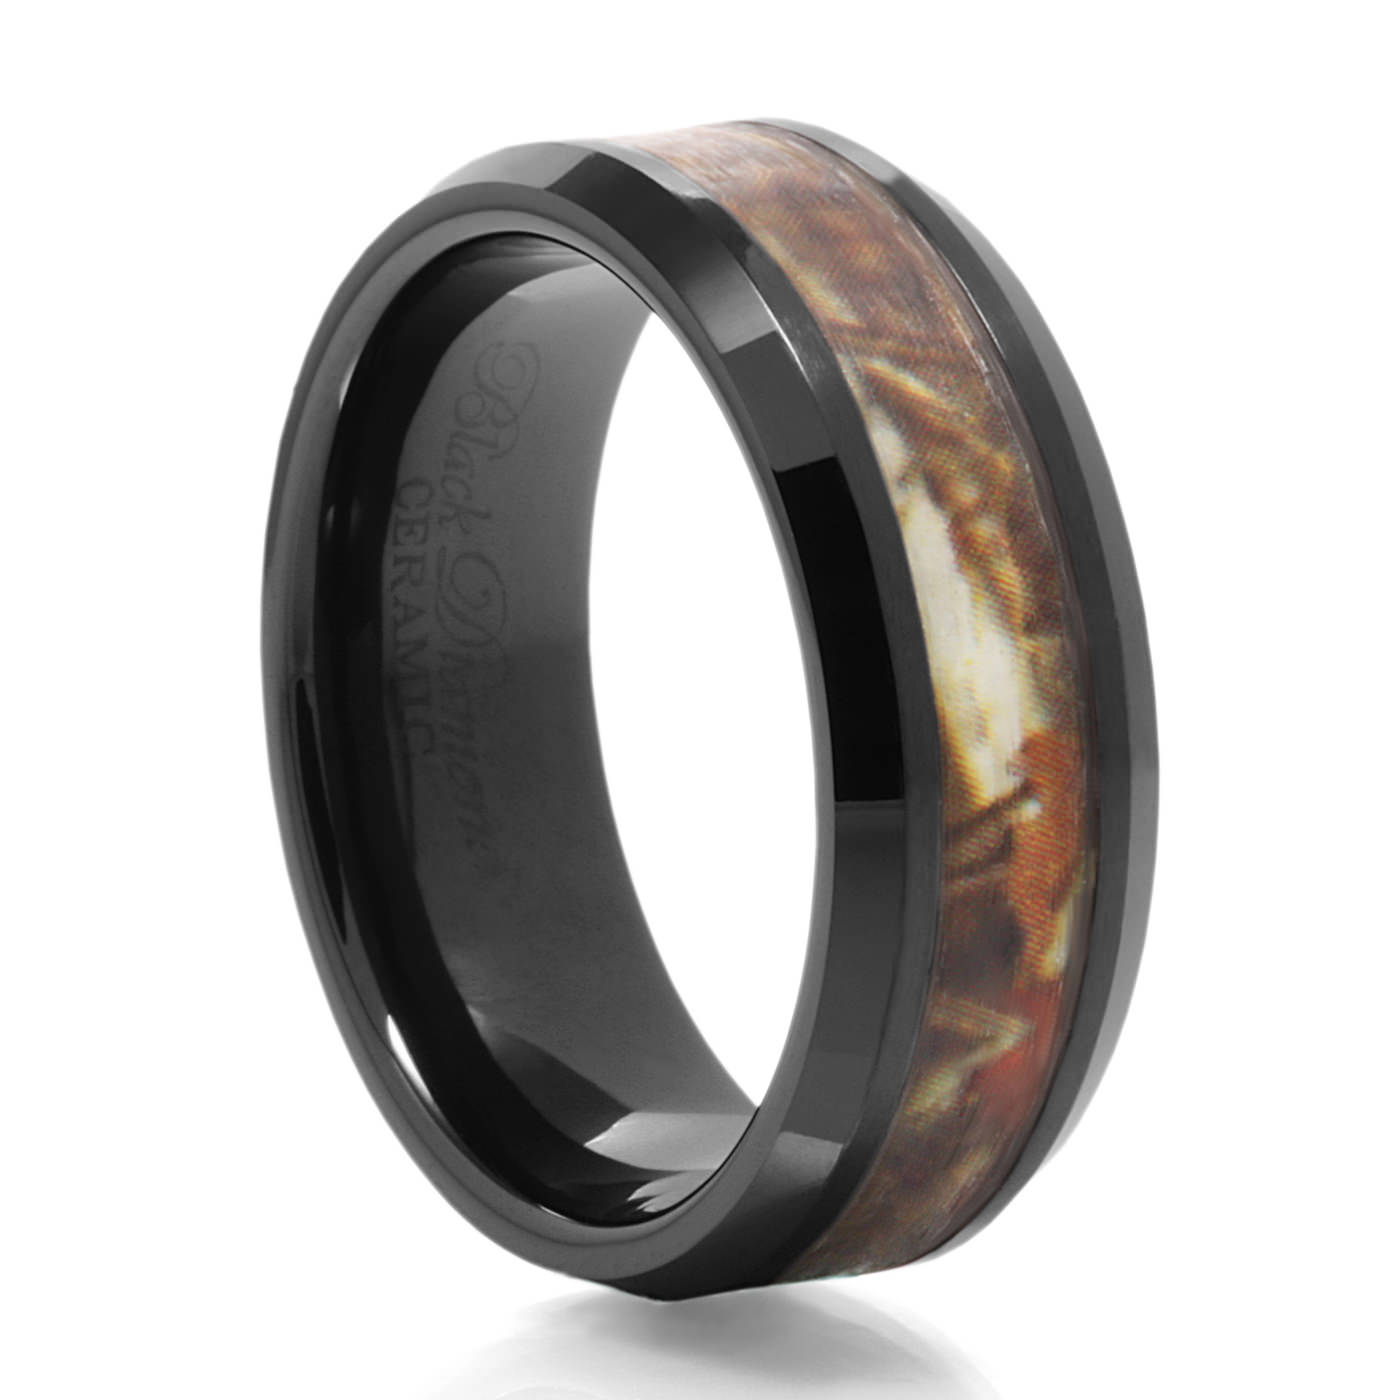 buck black ceramic camo wedding band heavy stone rings camo rings - Orange Camo Wedding Rings